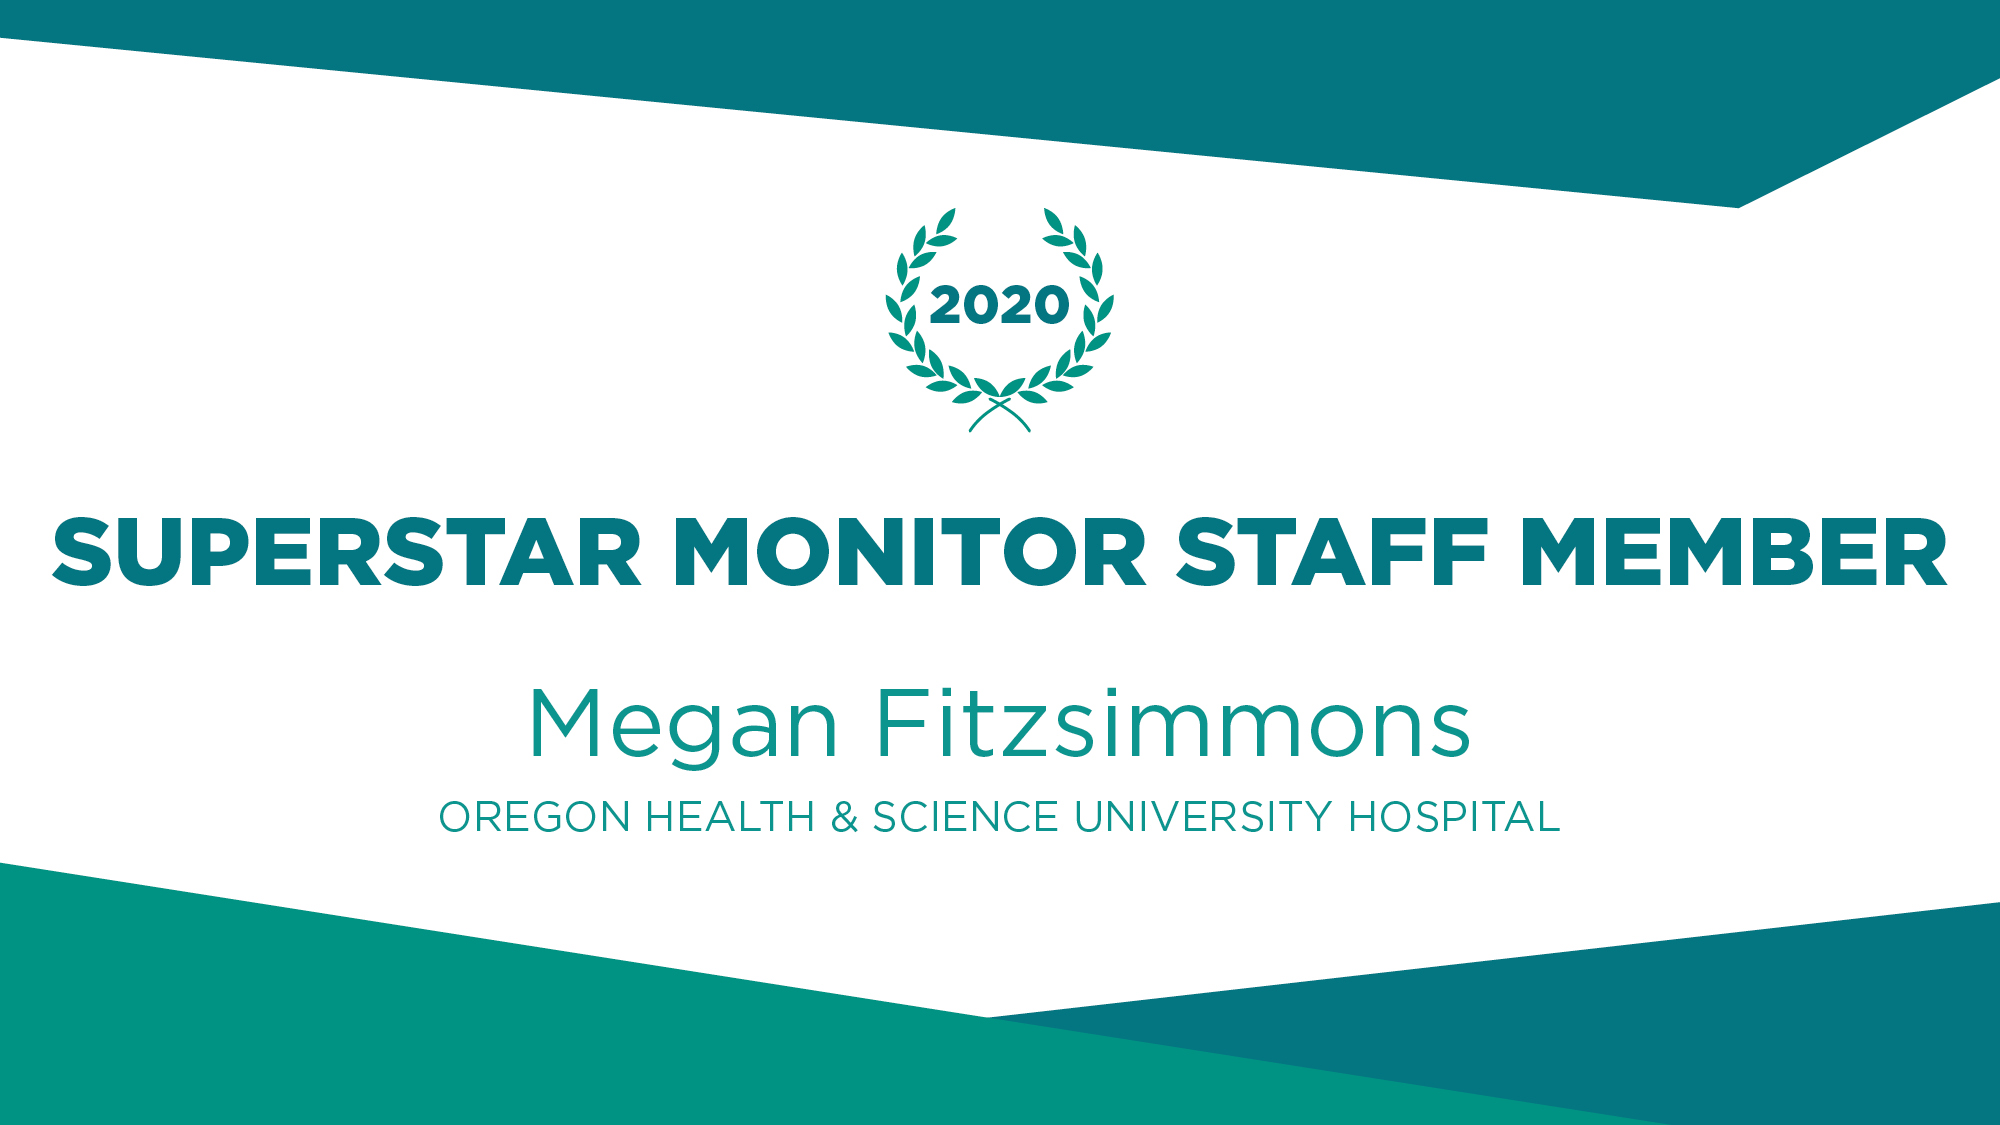 AvaSure Recognizes Oregon Health and Science University Hospital's Megan Fitzsimmons for Measuring Success, Upholding Effective Use of Technology